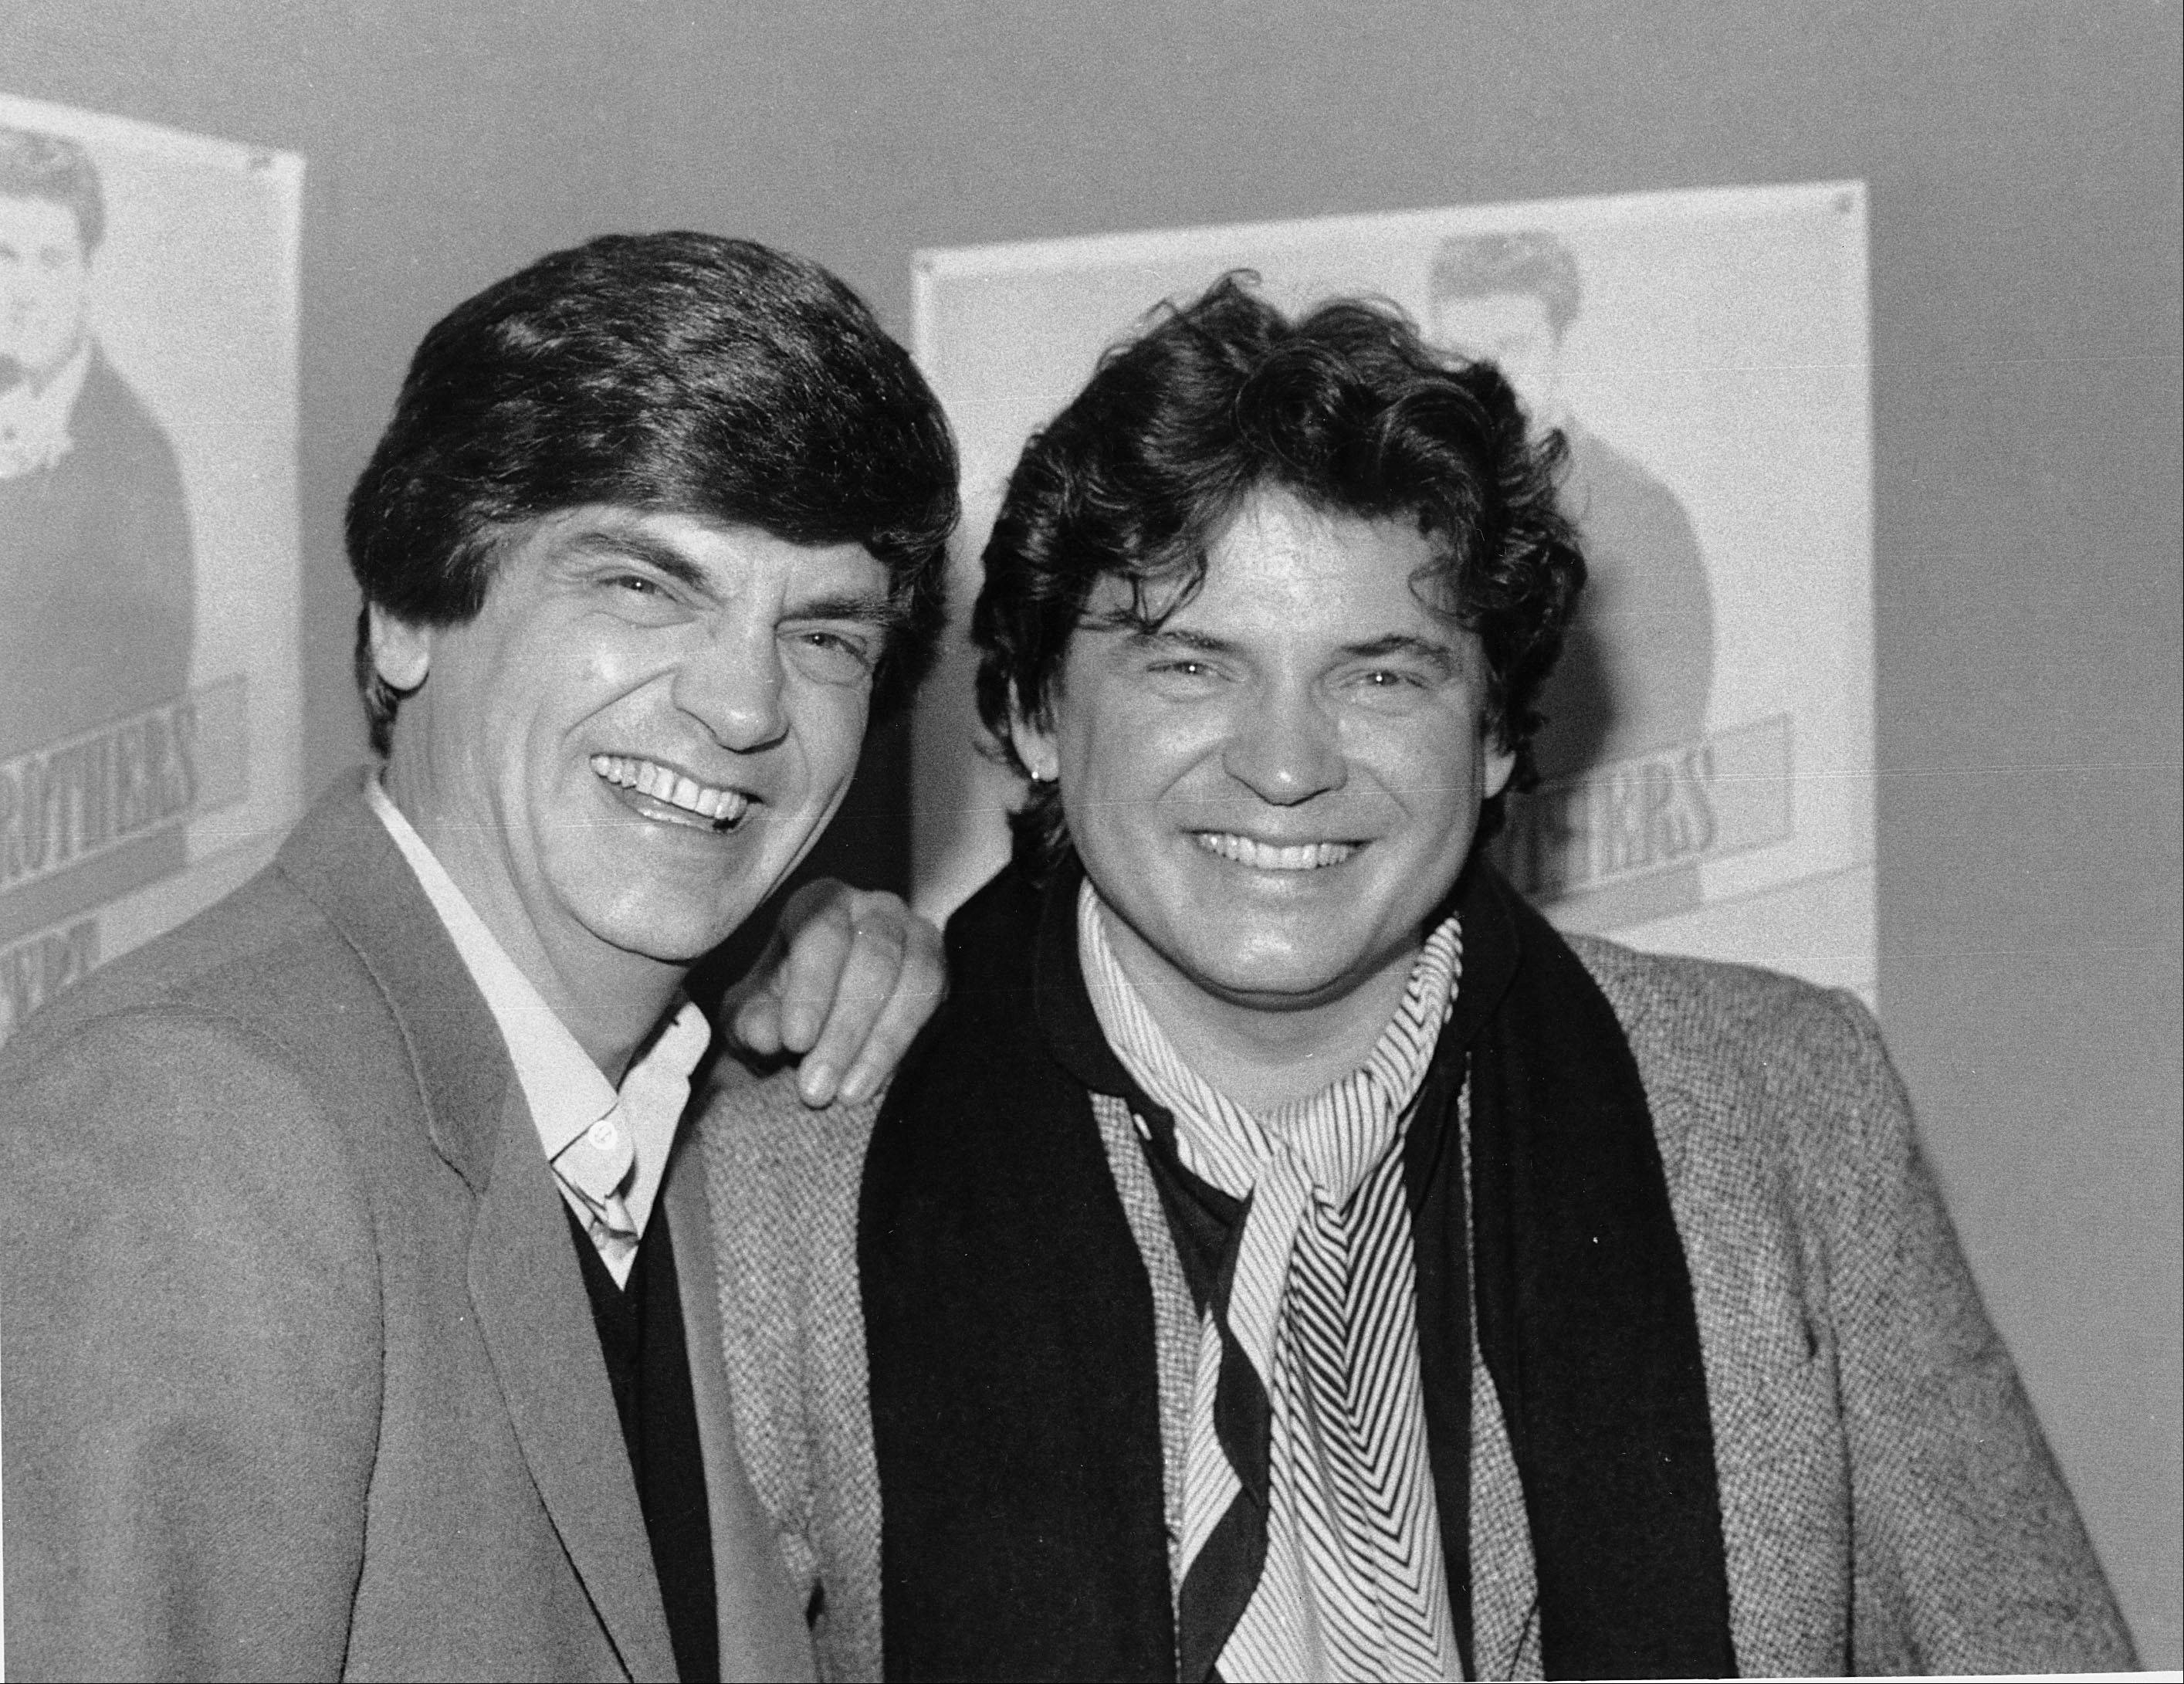 Phil, left, and Don Everly, of the Everly Brothers, joke around for photographers in New York City.